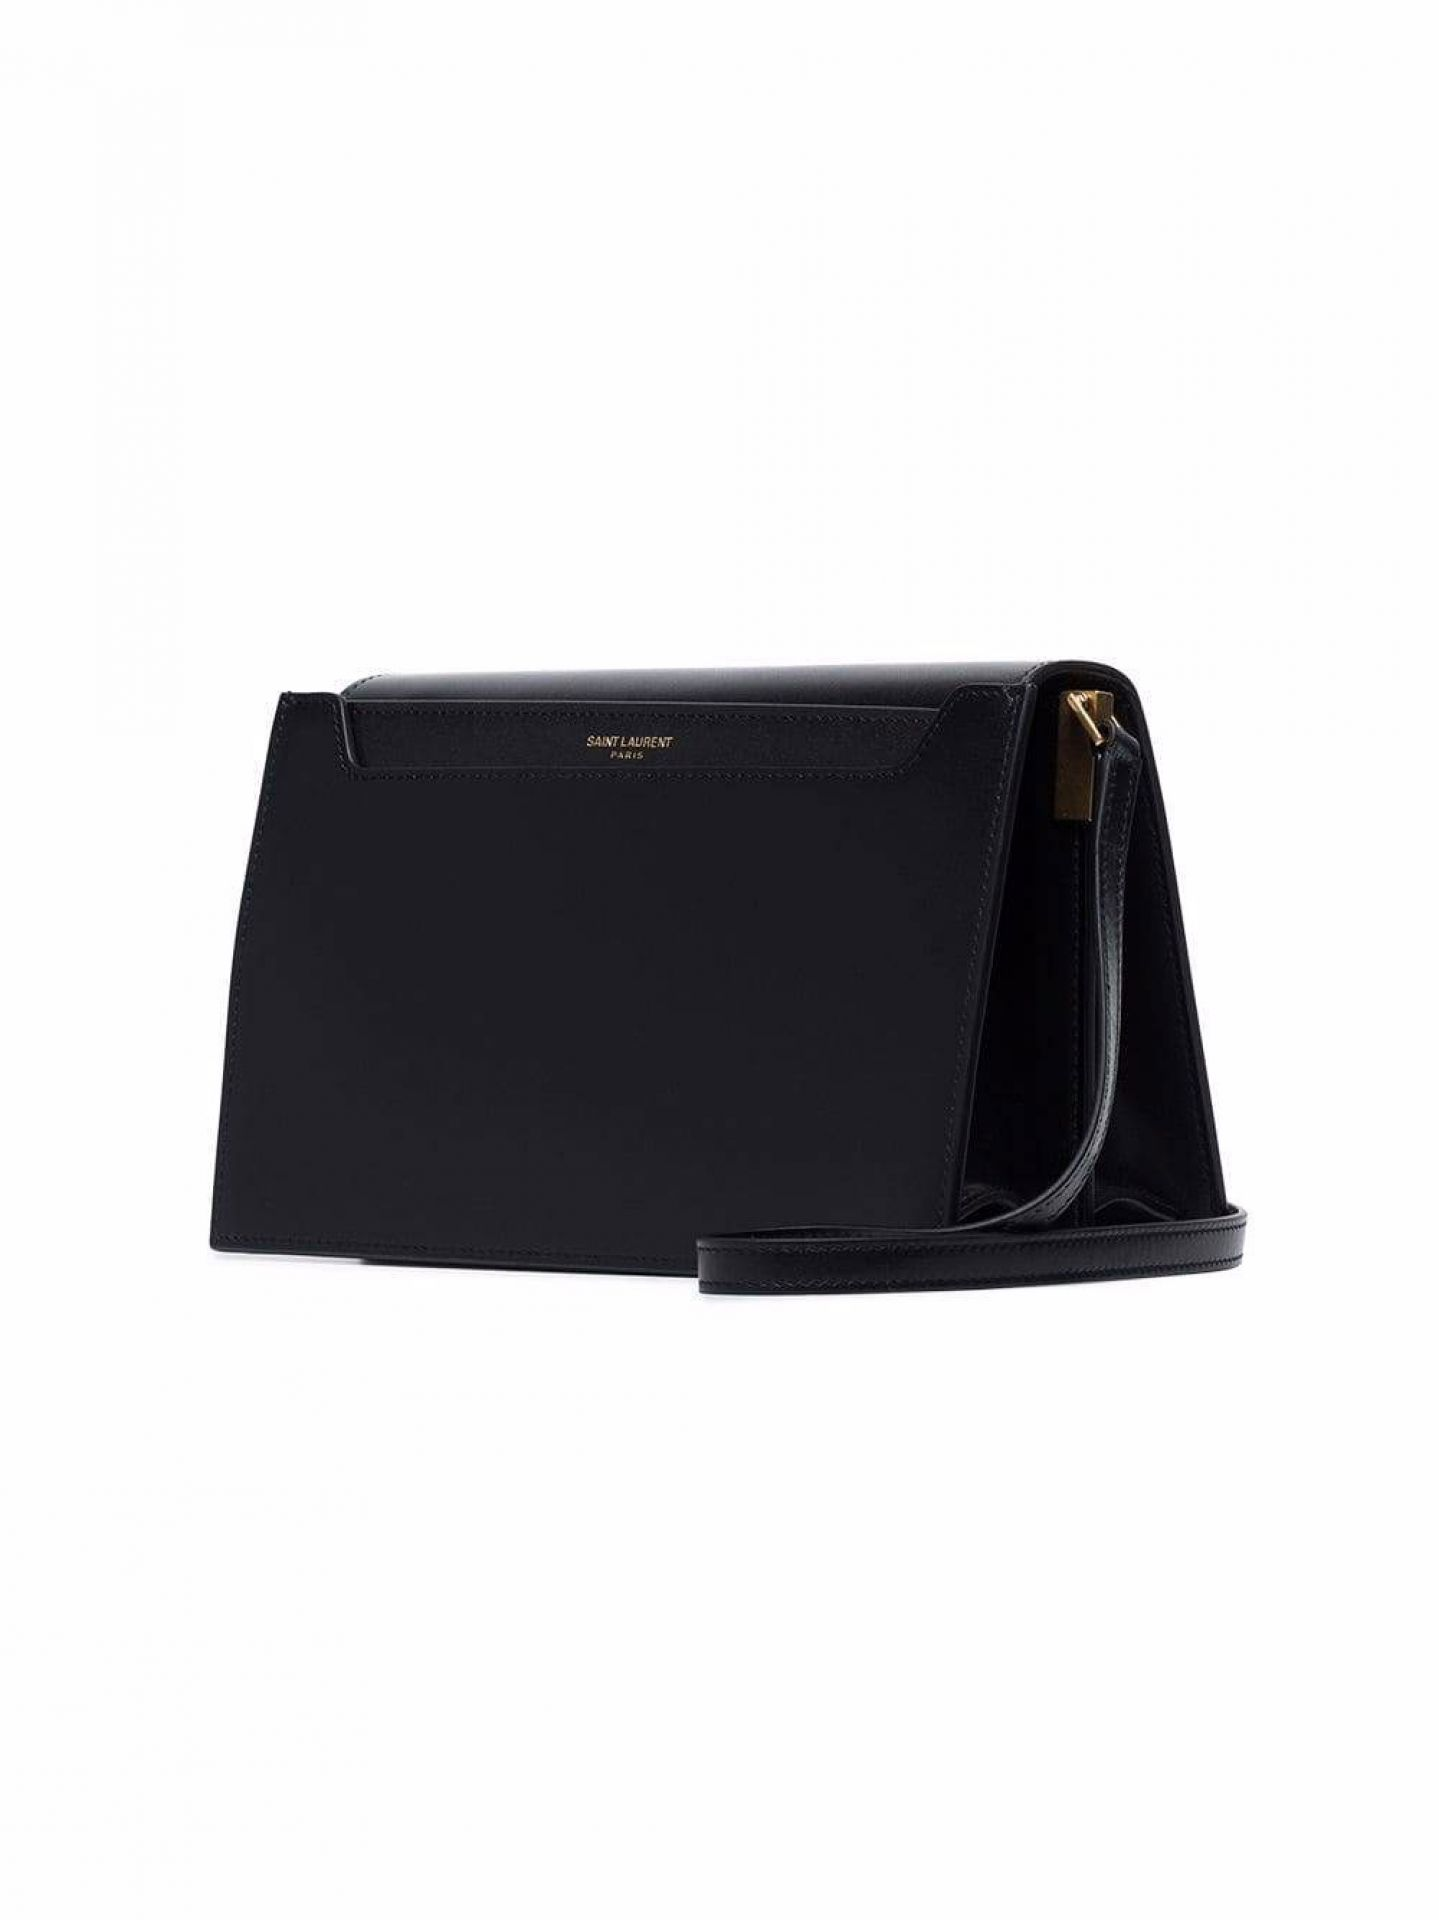 SAINT LAURENT WOMENS SMOOTH BLACK LEATHER CATHERINE SHOULDER BAG